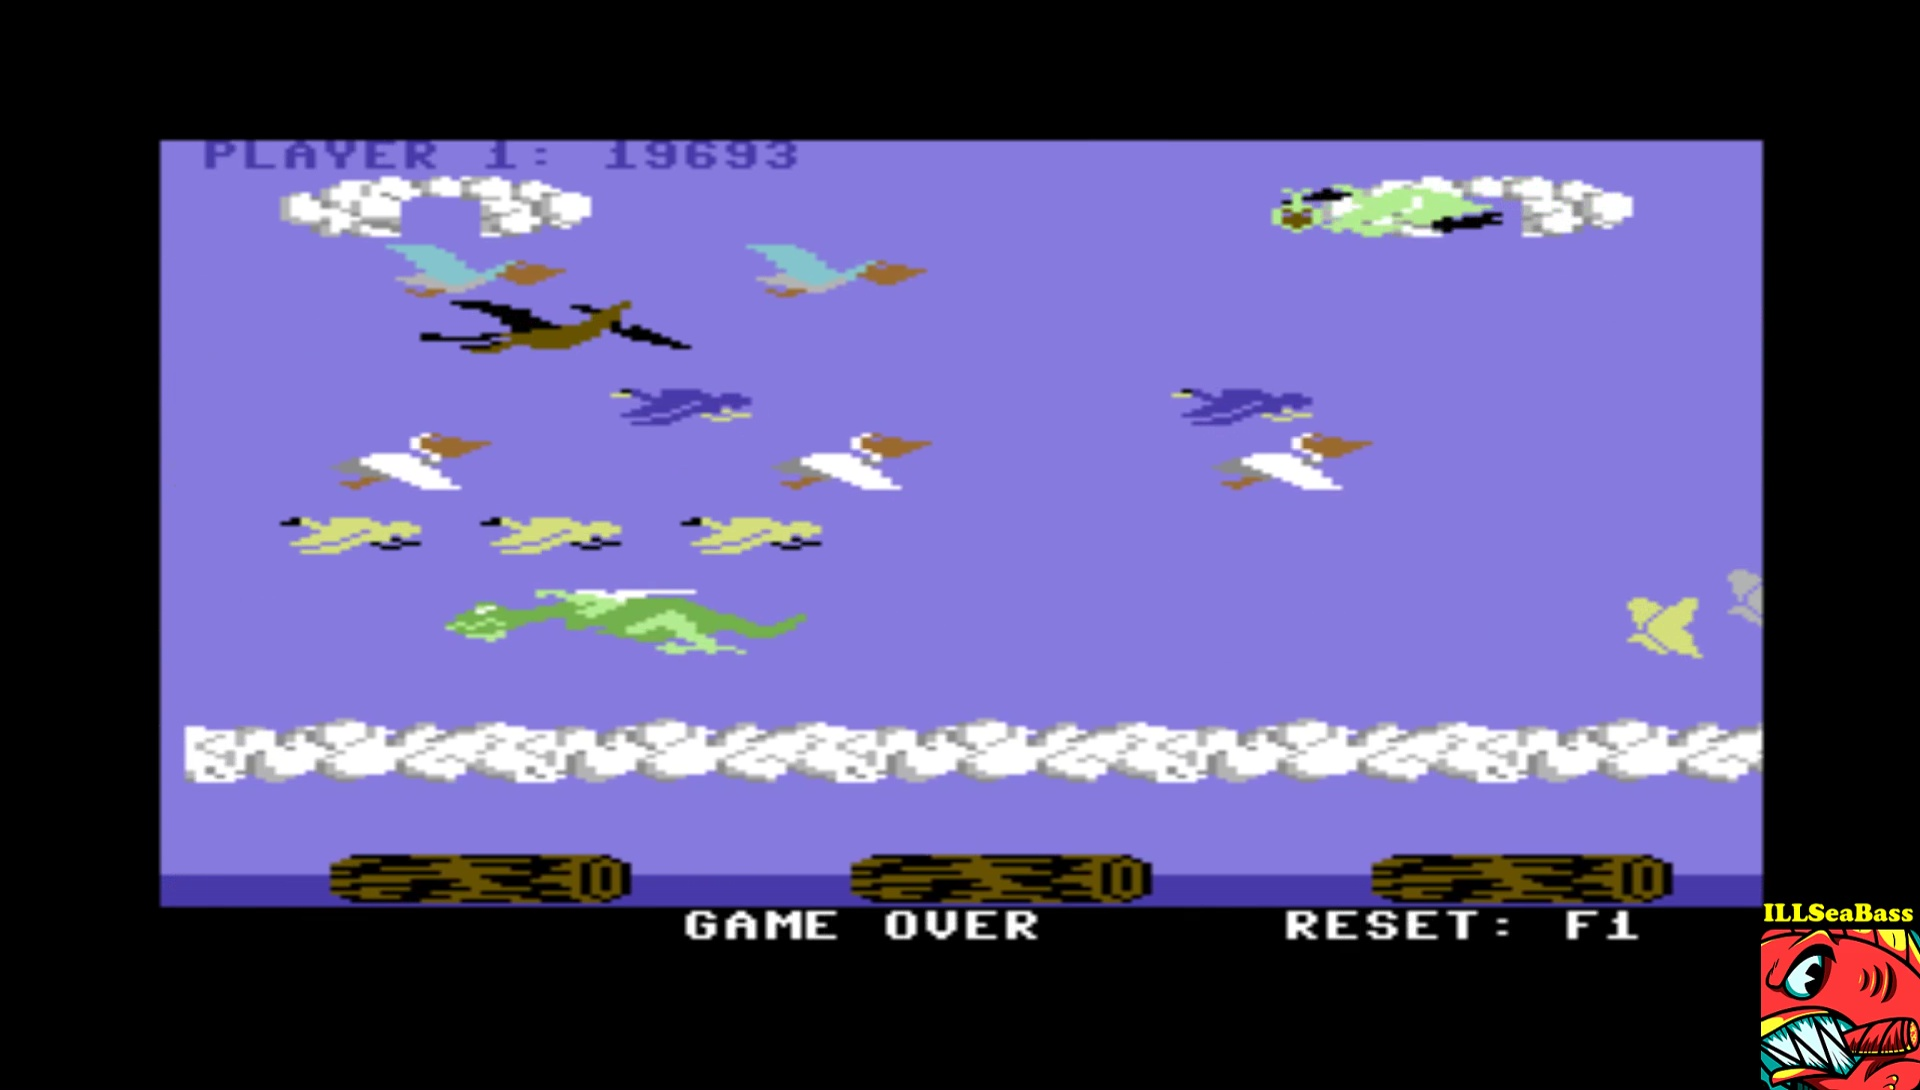 ILLSeaBass: Frogger II - Threedeep: Easy (Commodore 64 Emulated) 19,693 points on 2017-03-21 12:34:30